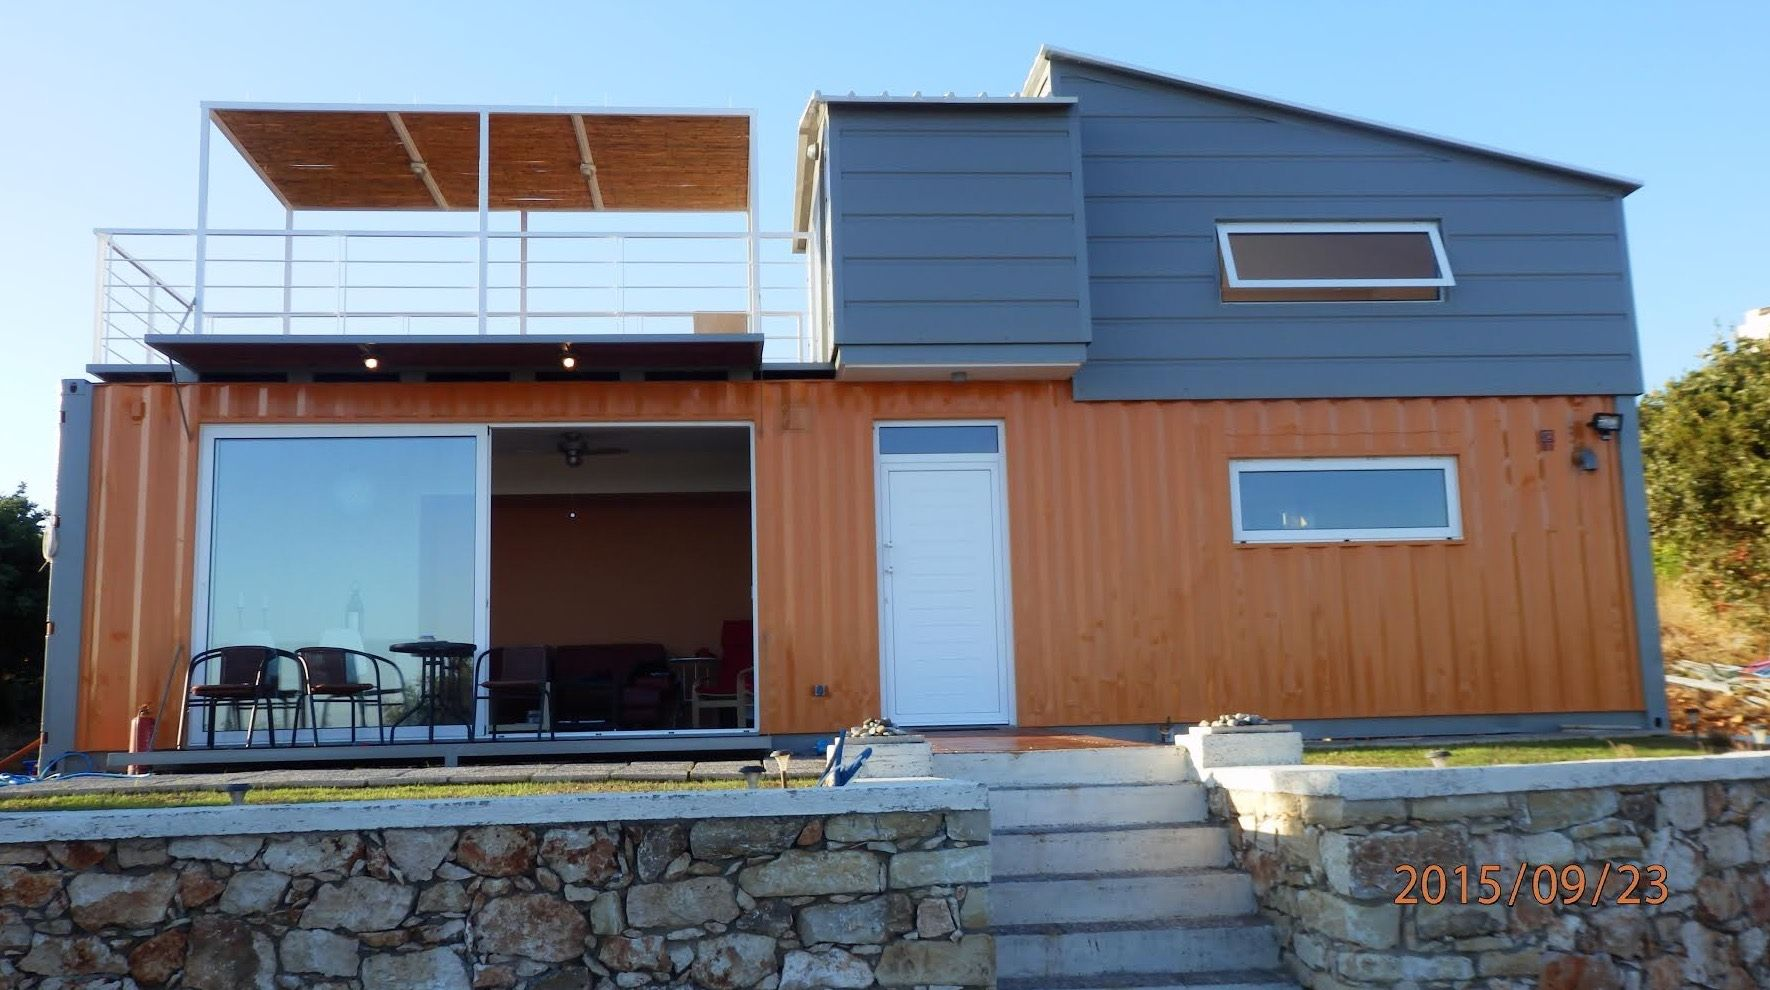 Home Shipping Containers this is a 538 sq. ft. shipping container tiny home in greece built